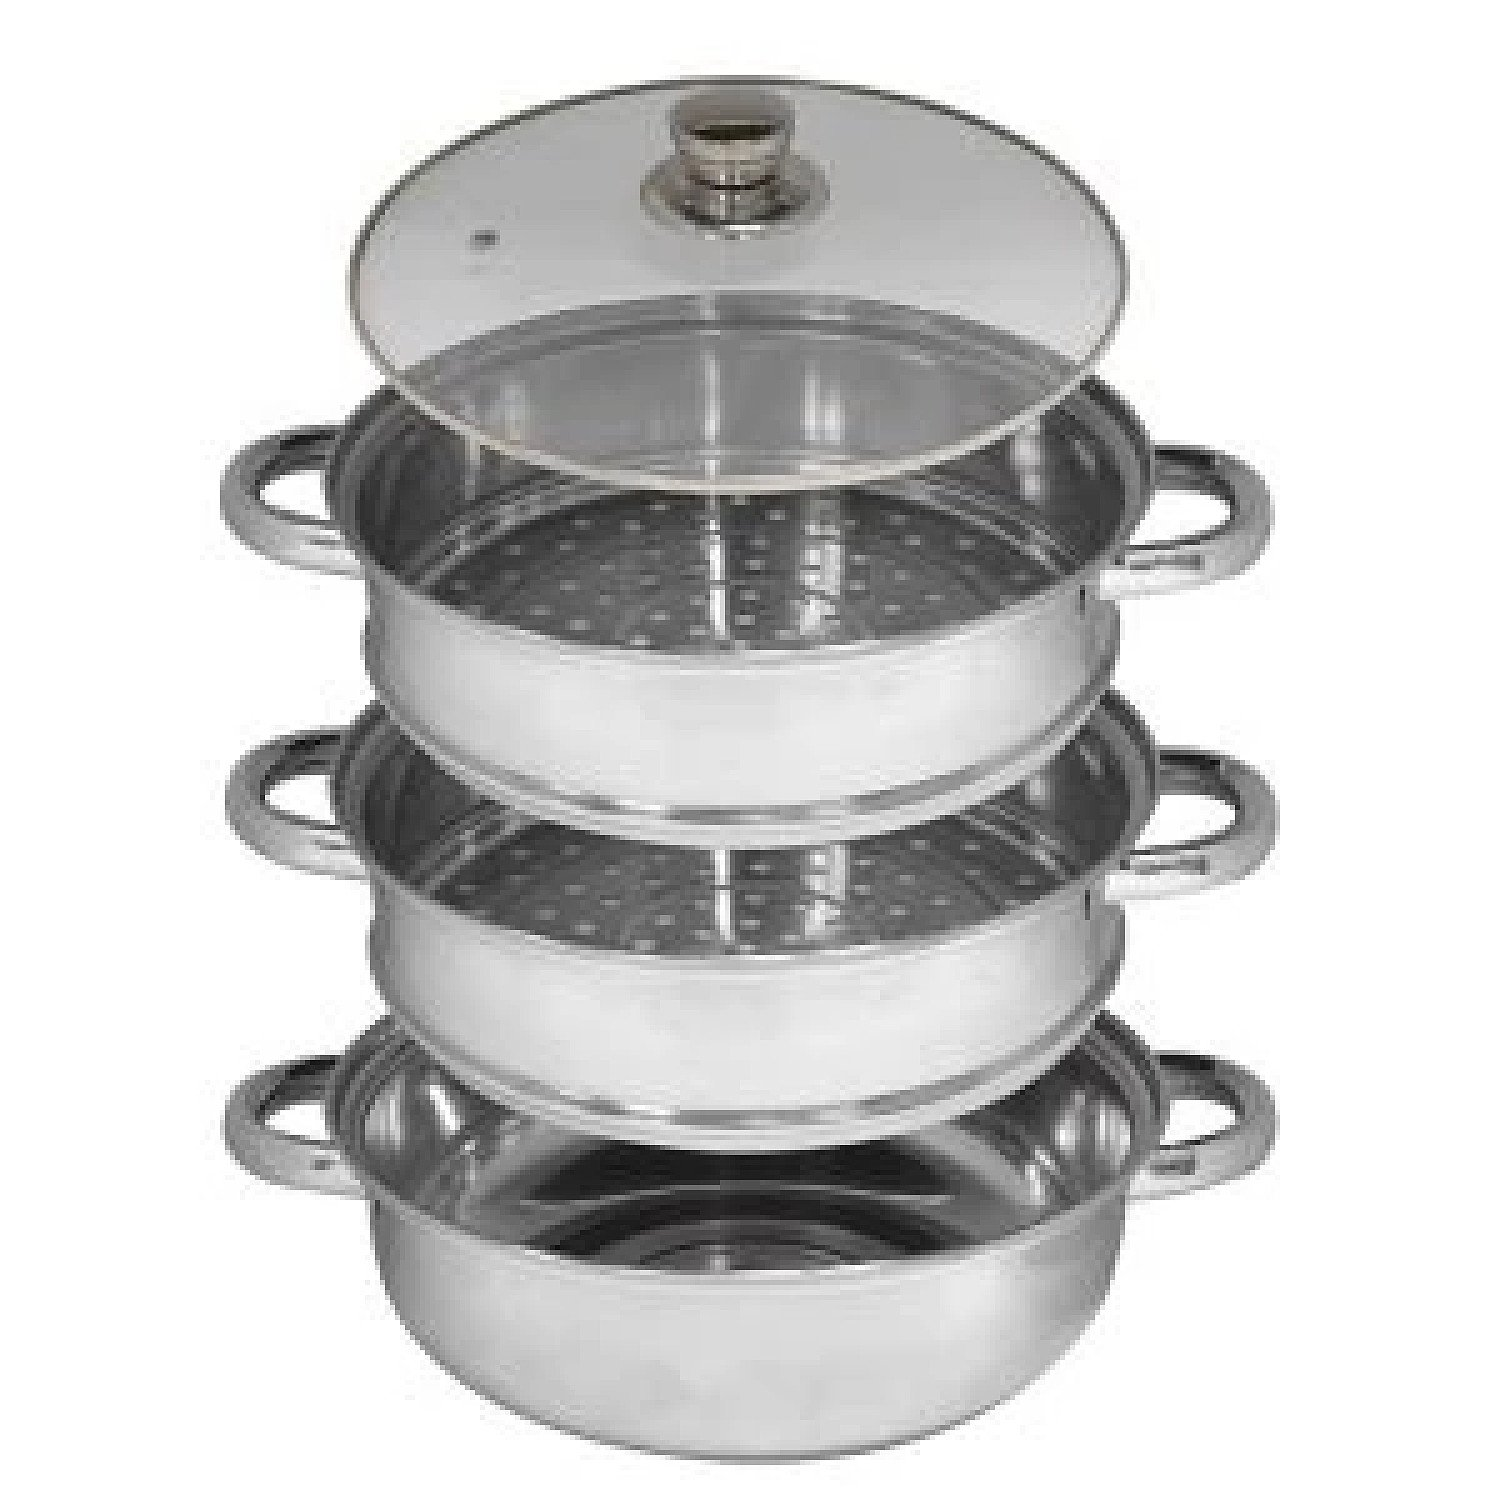 3 Tier Stainless Steel Steamer Free Postage